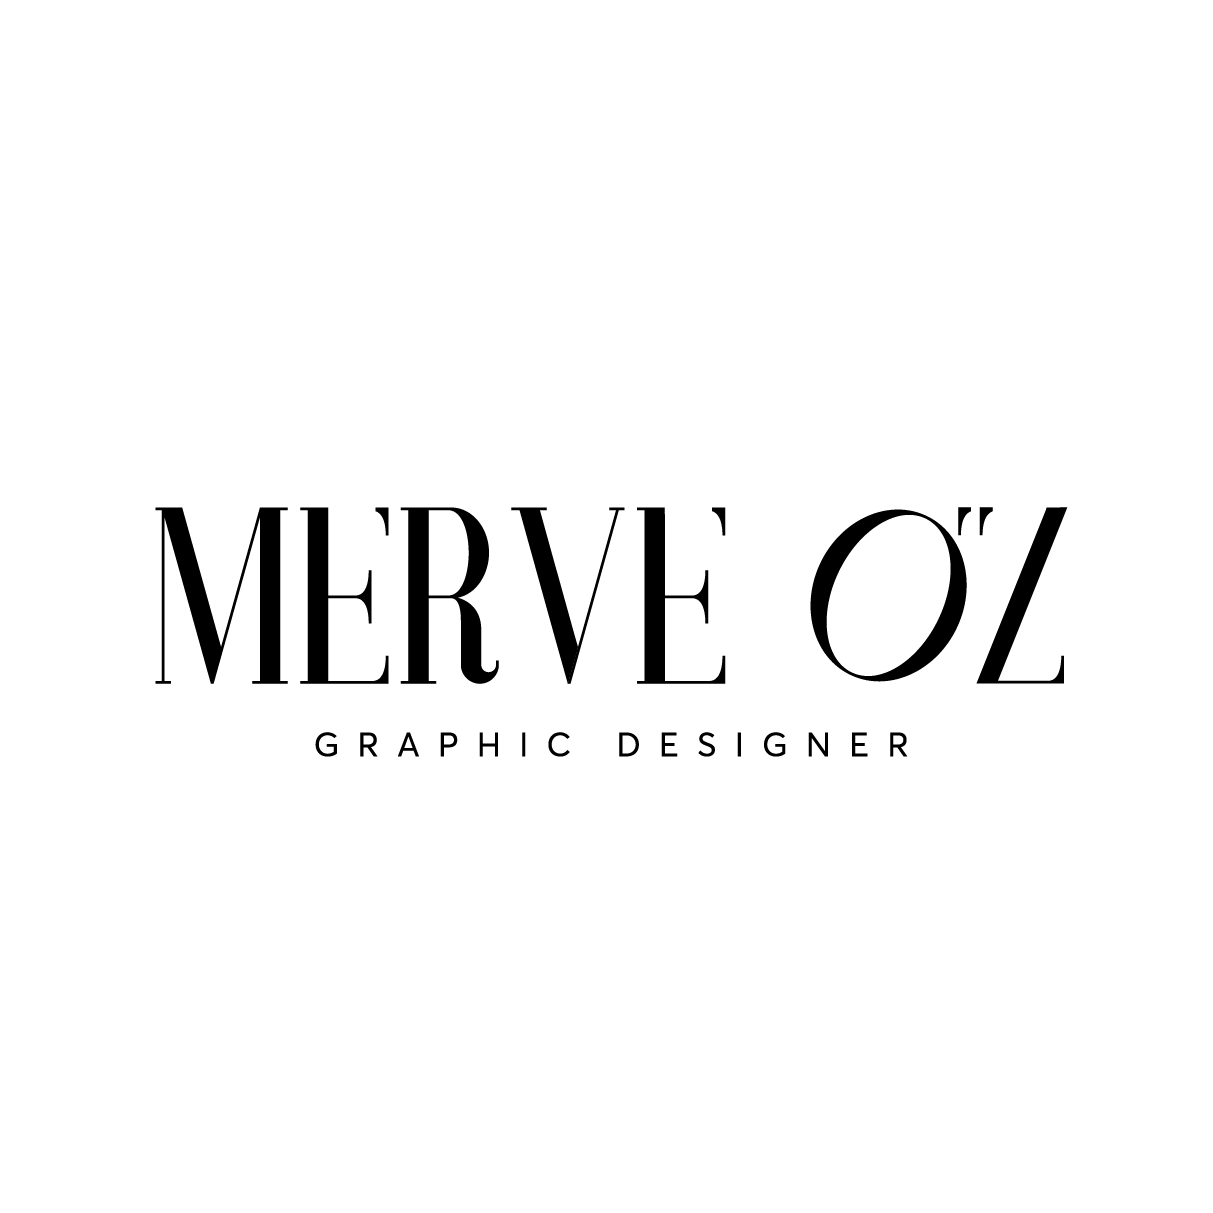 merveozdesign